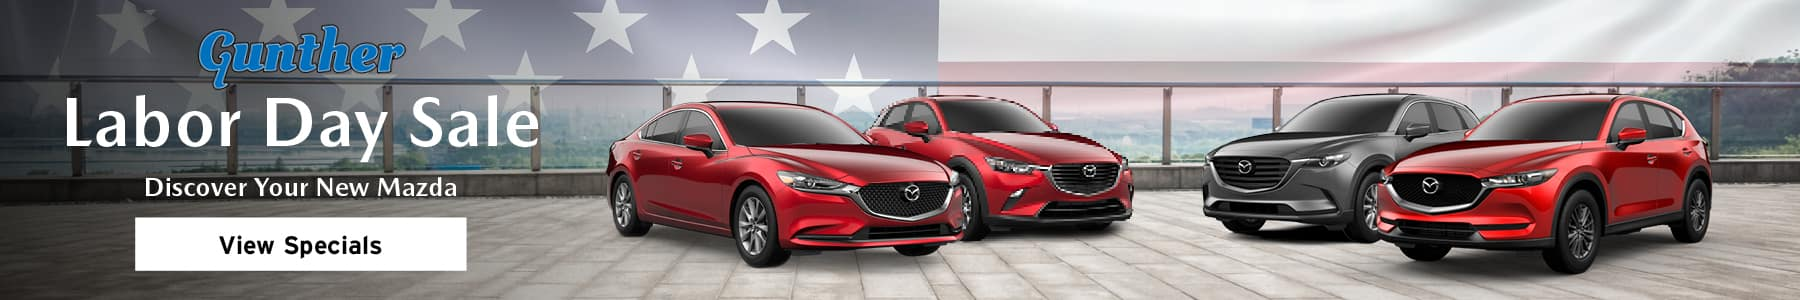 Gunther Labor Day Sale. Discover Your New Mazda! View Specials.